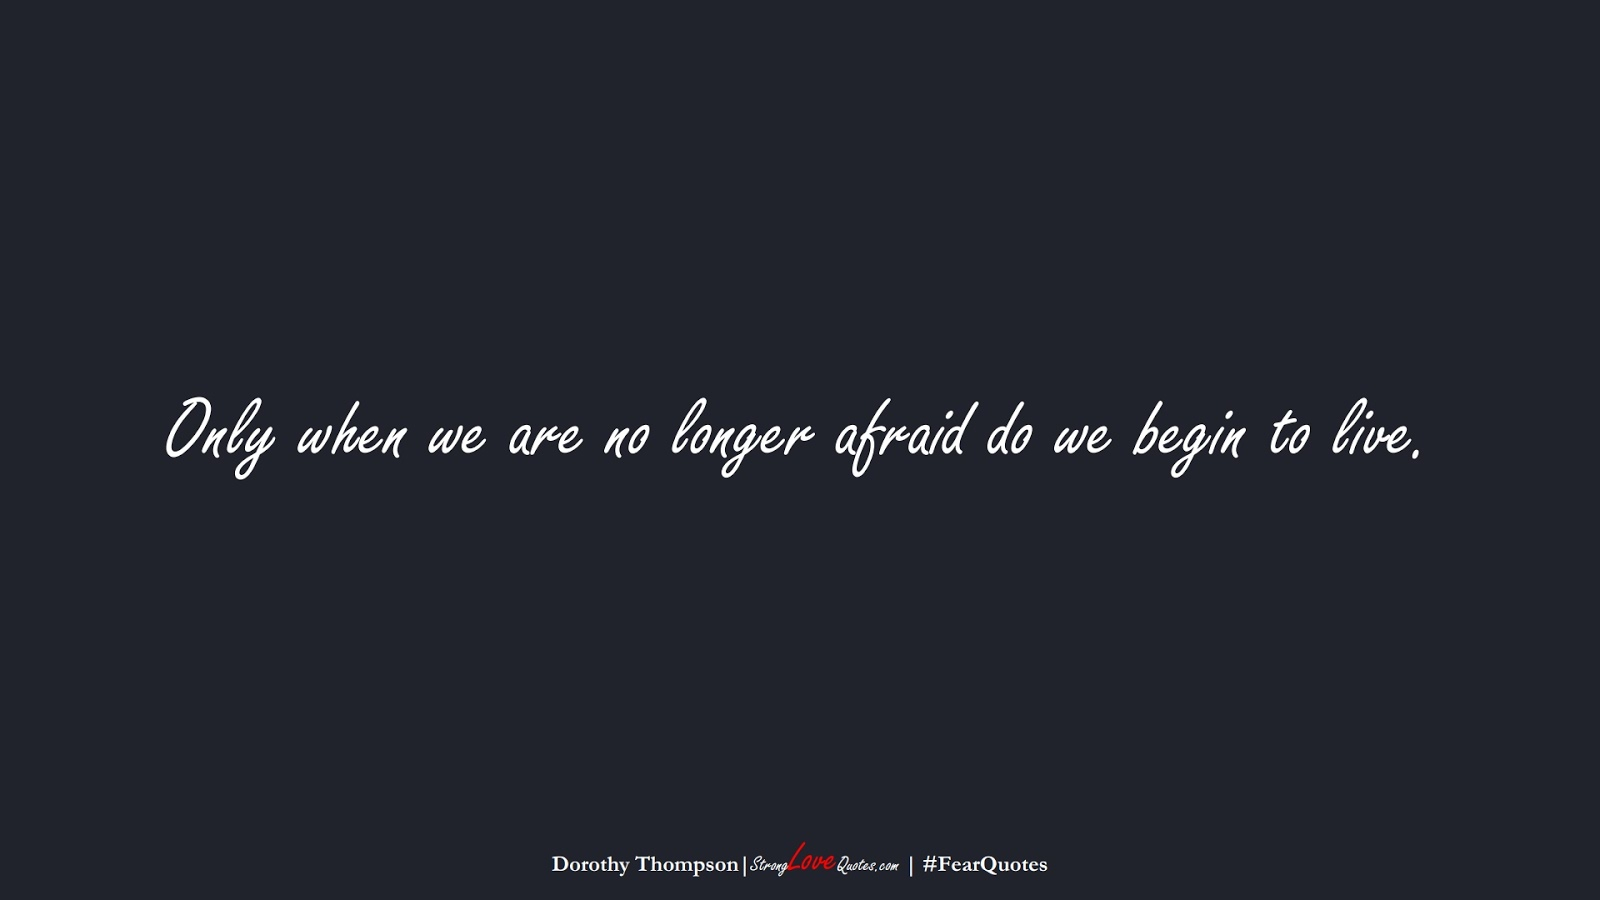 Only when we are no longer afraid do we begin to live. (Dorothy Thompson);  #FearQuotes